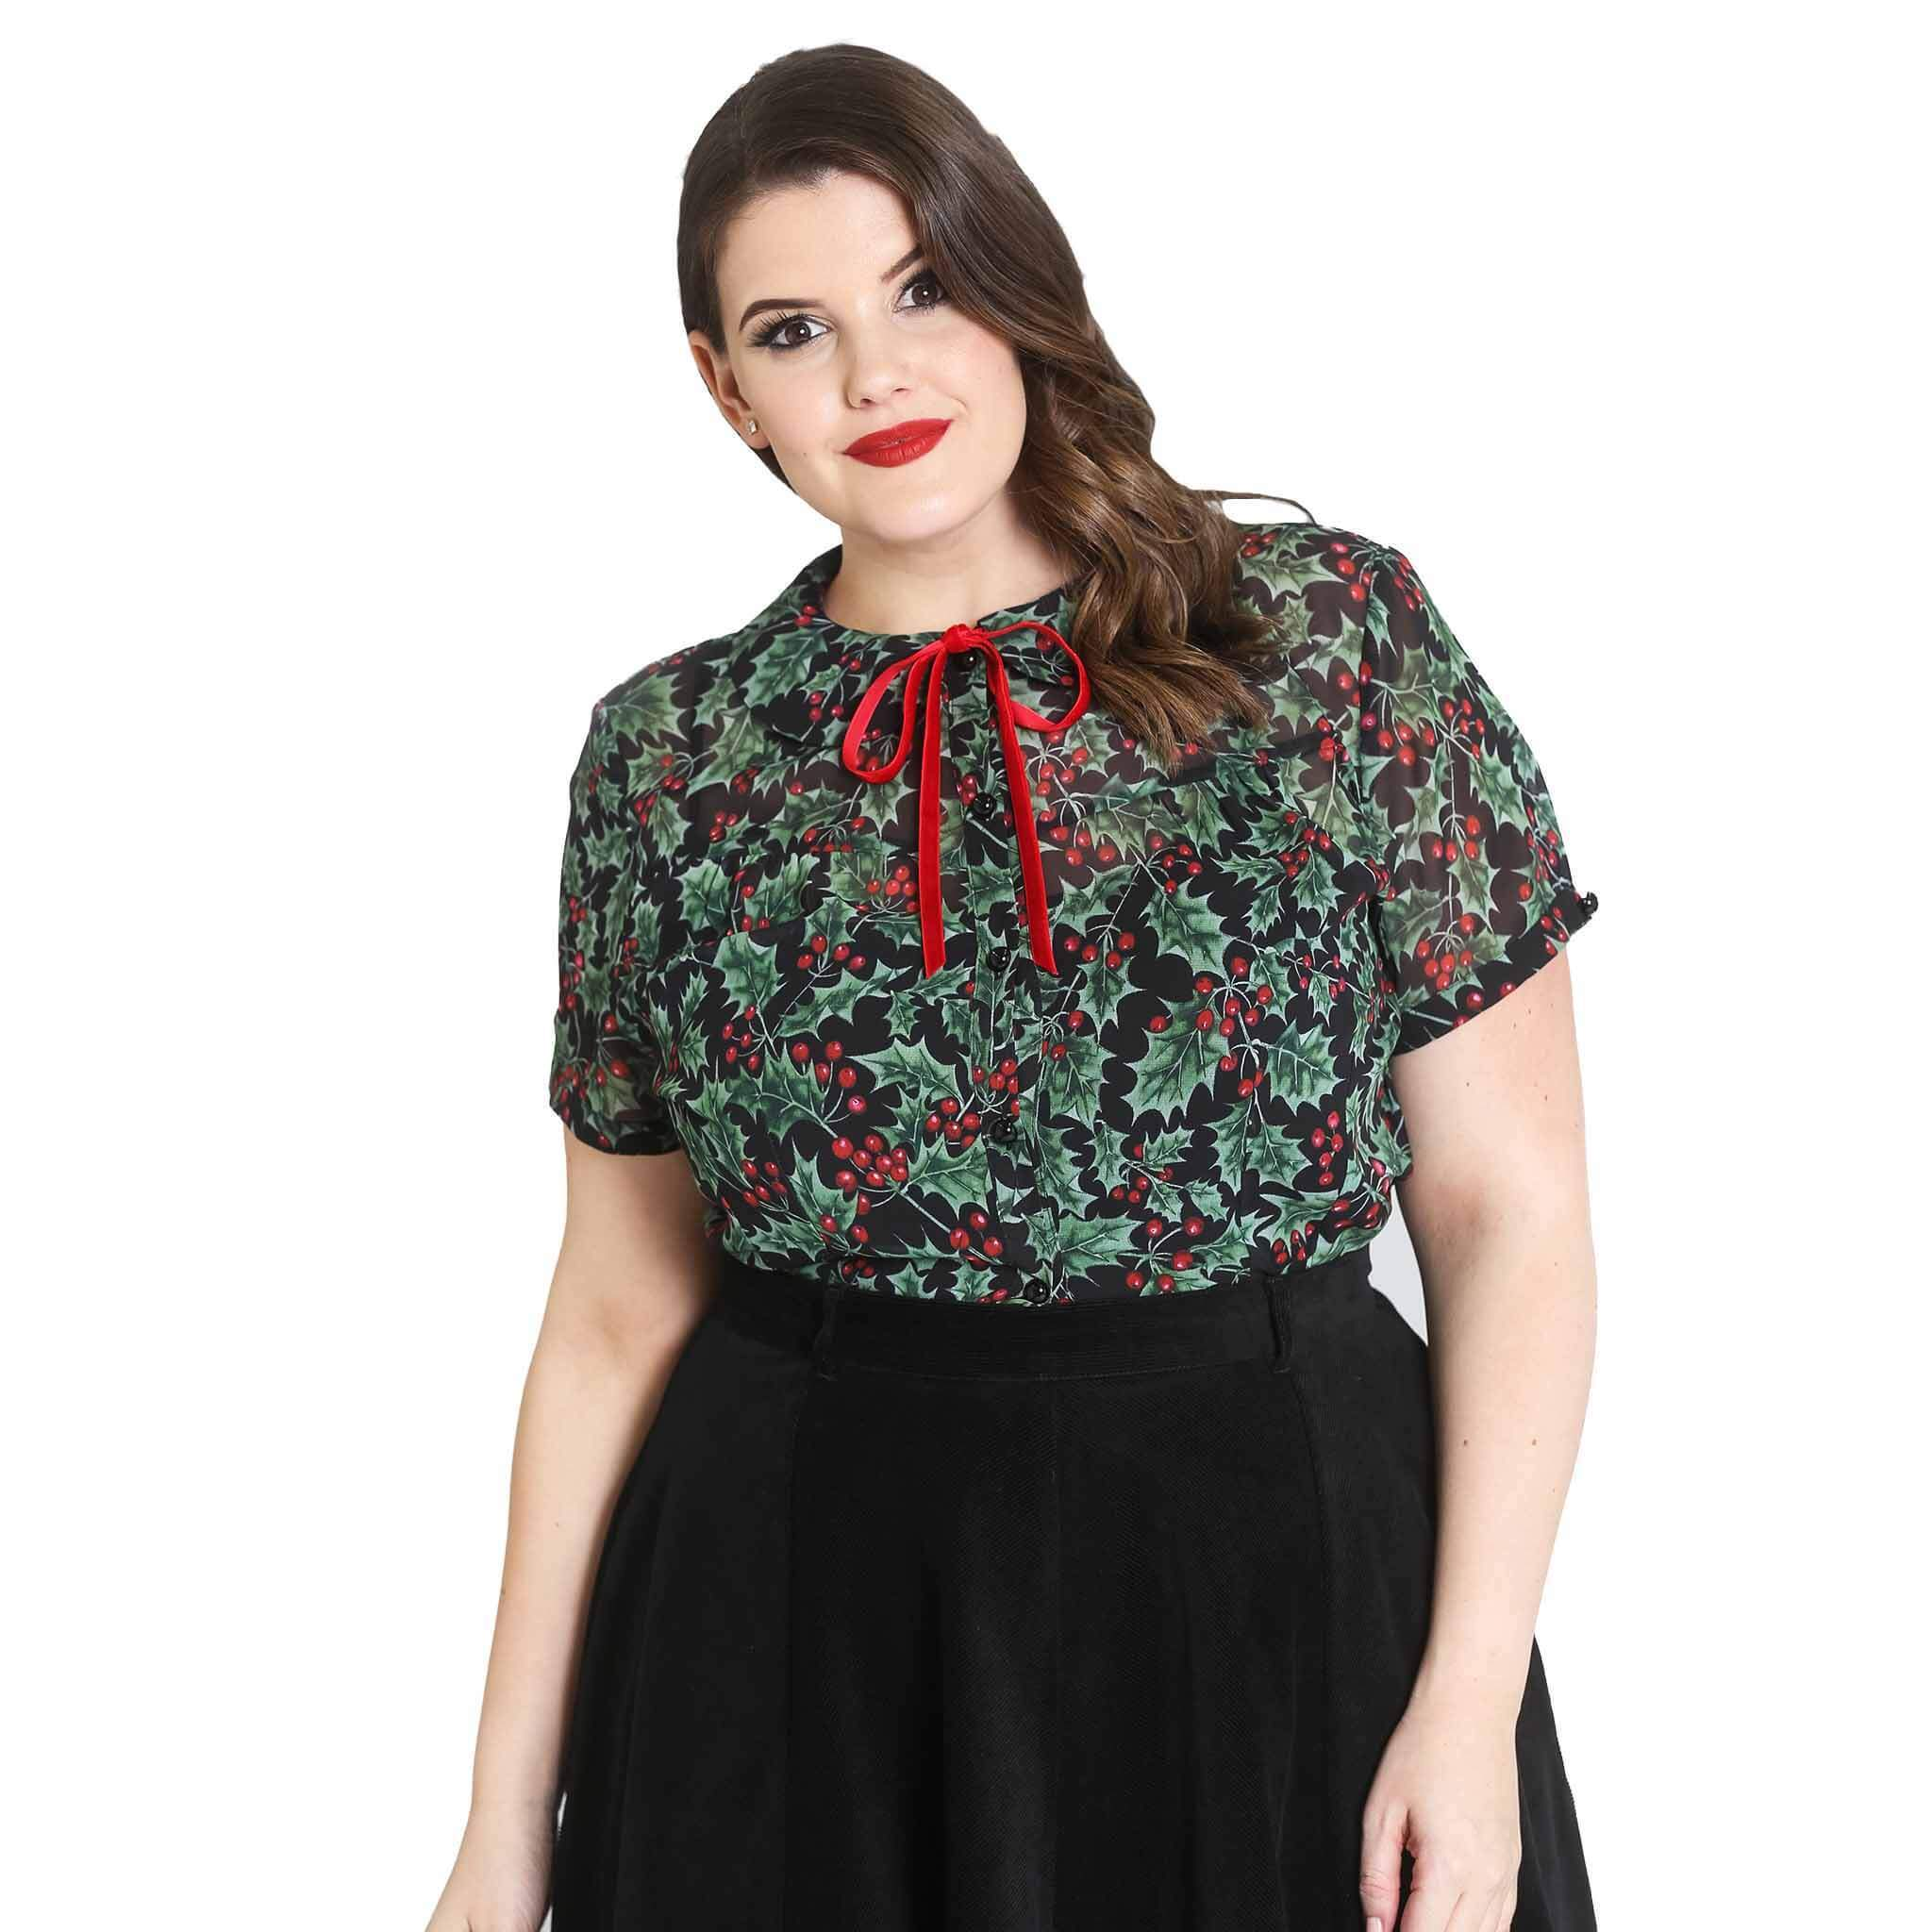 HELL BUNNY JENNIE XMAS red FLORAL holly 50s CHRISTMAS XMAS top BLOUSE XS-4XL